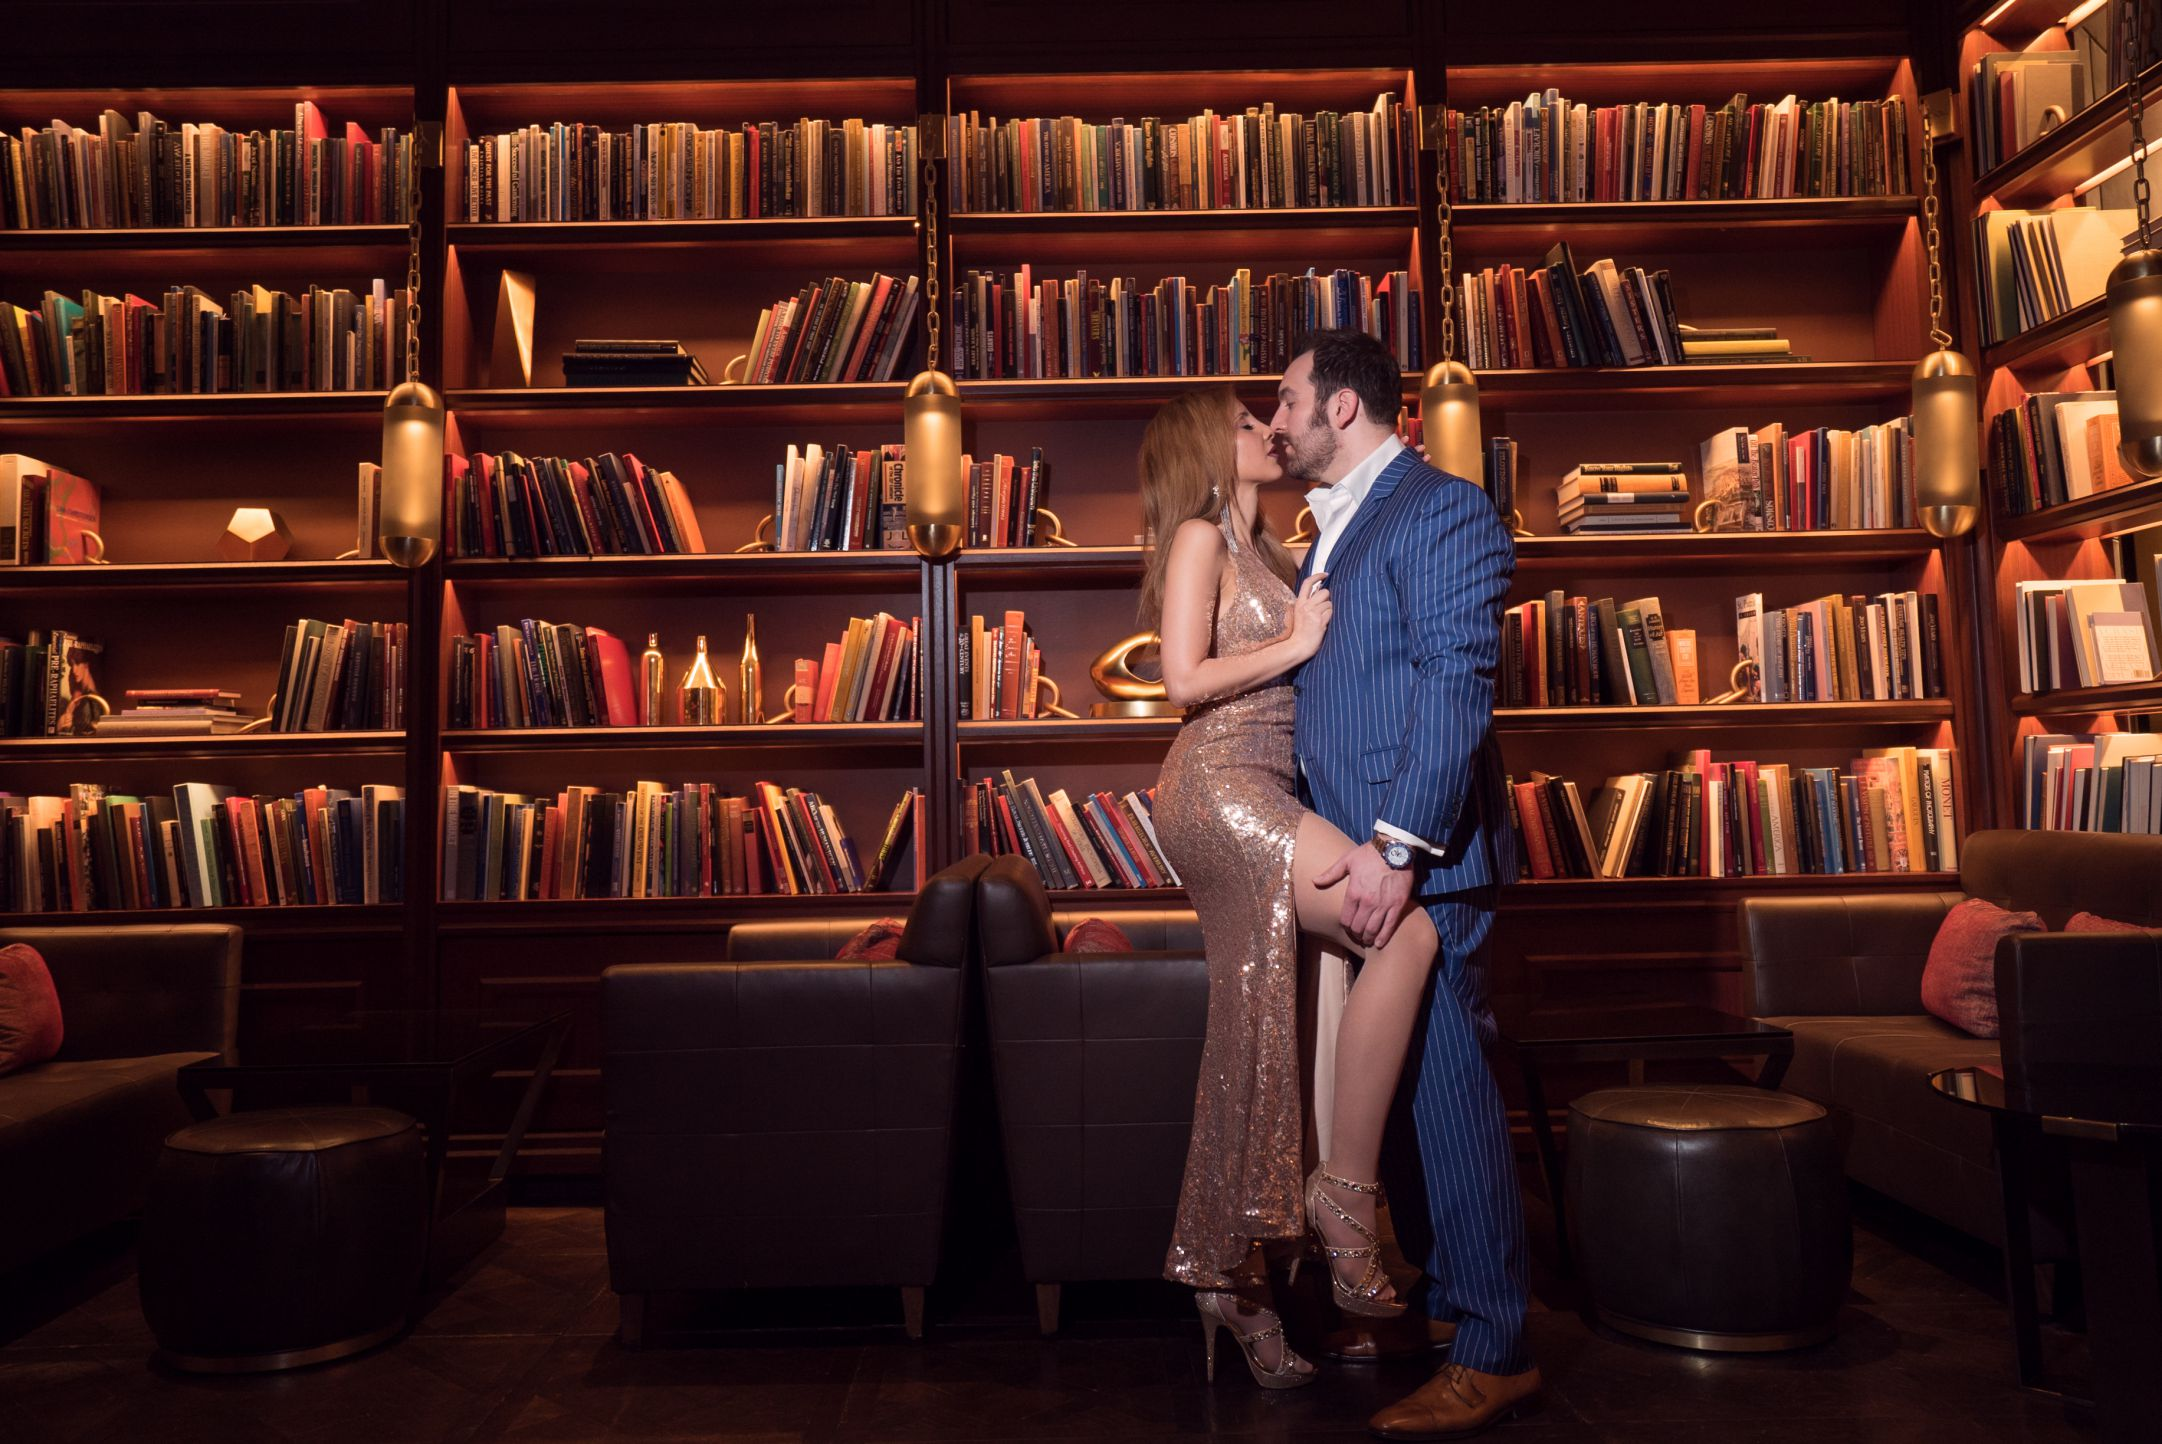 Couple photoshoot inside a library all dressed up